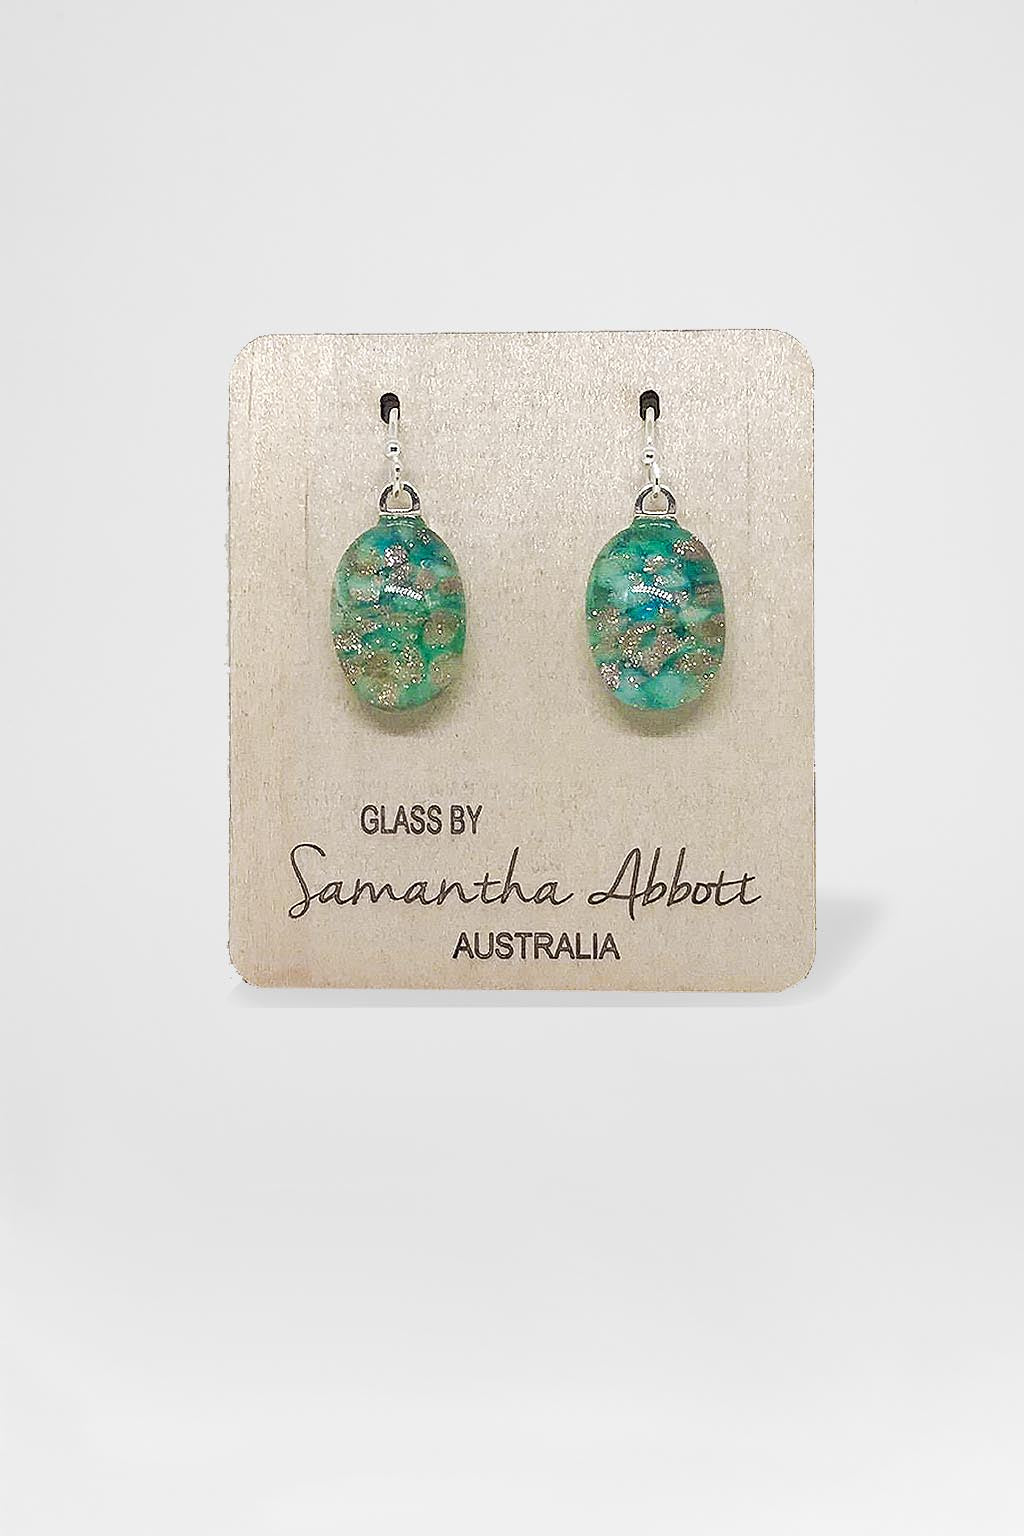 Samantha Abbott Glass-Oval Drop Earring - Turqouise Glitter Droplets-Mott and Mulberry